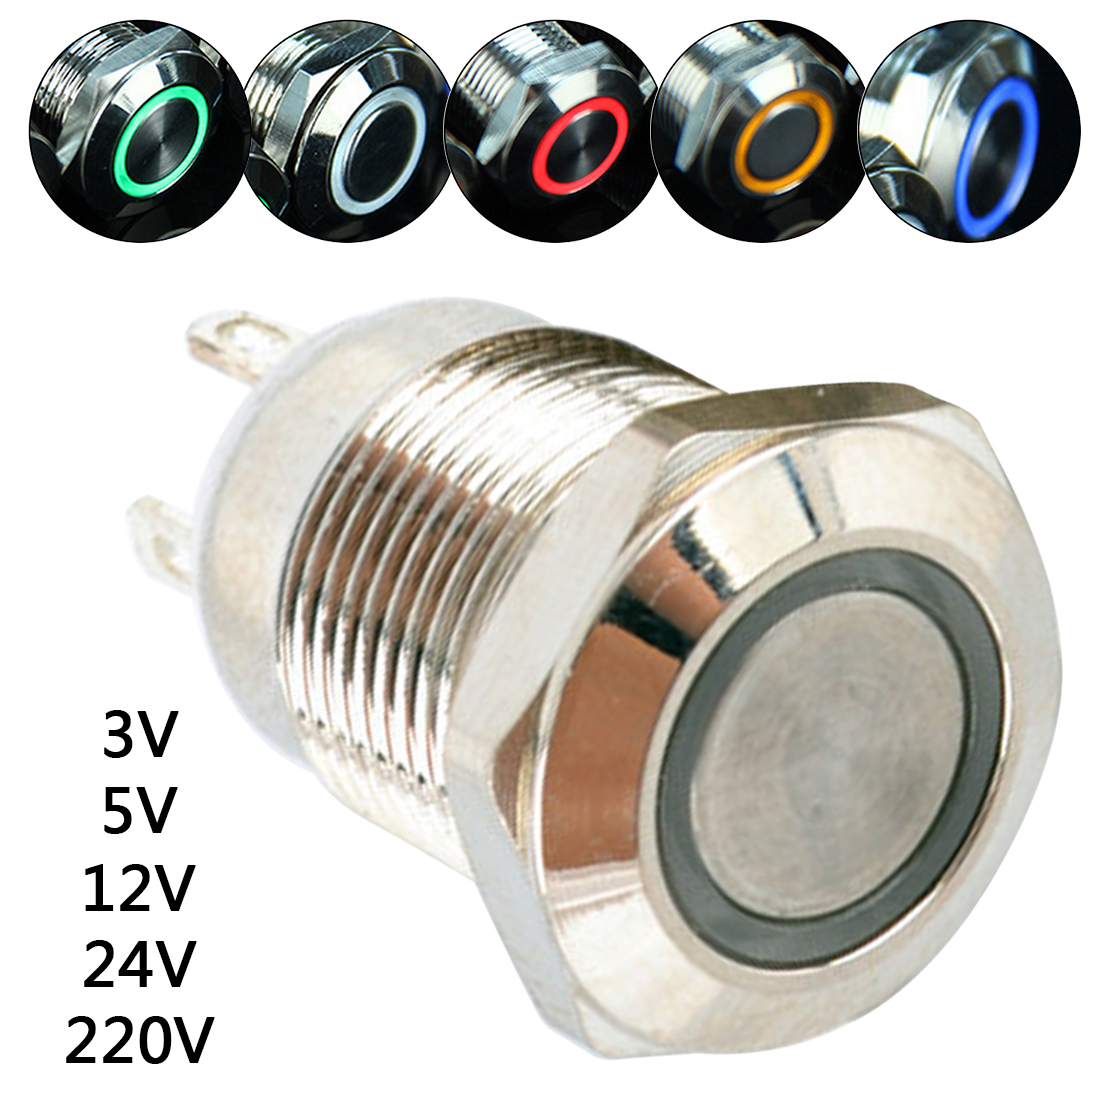 Best Top 10 Car Light Power Push Button Ideas And Get Free Shipping 0l7cl014